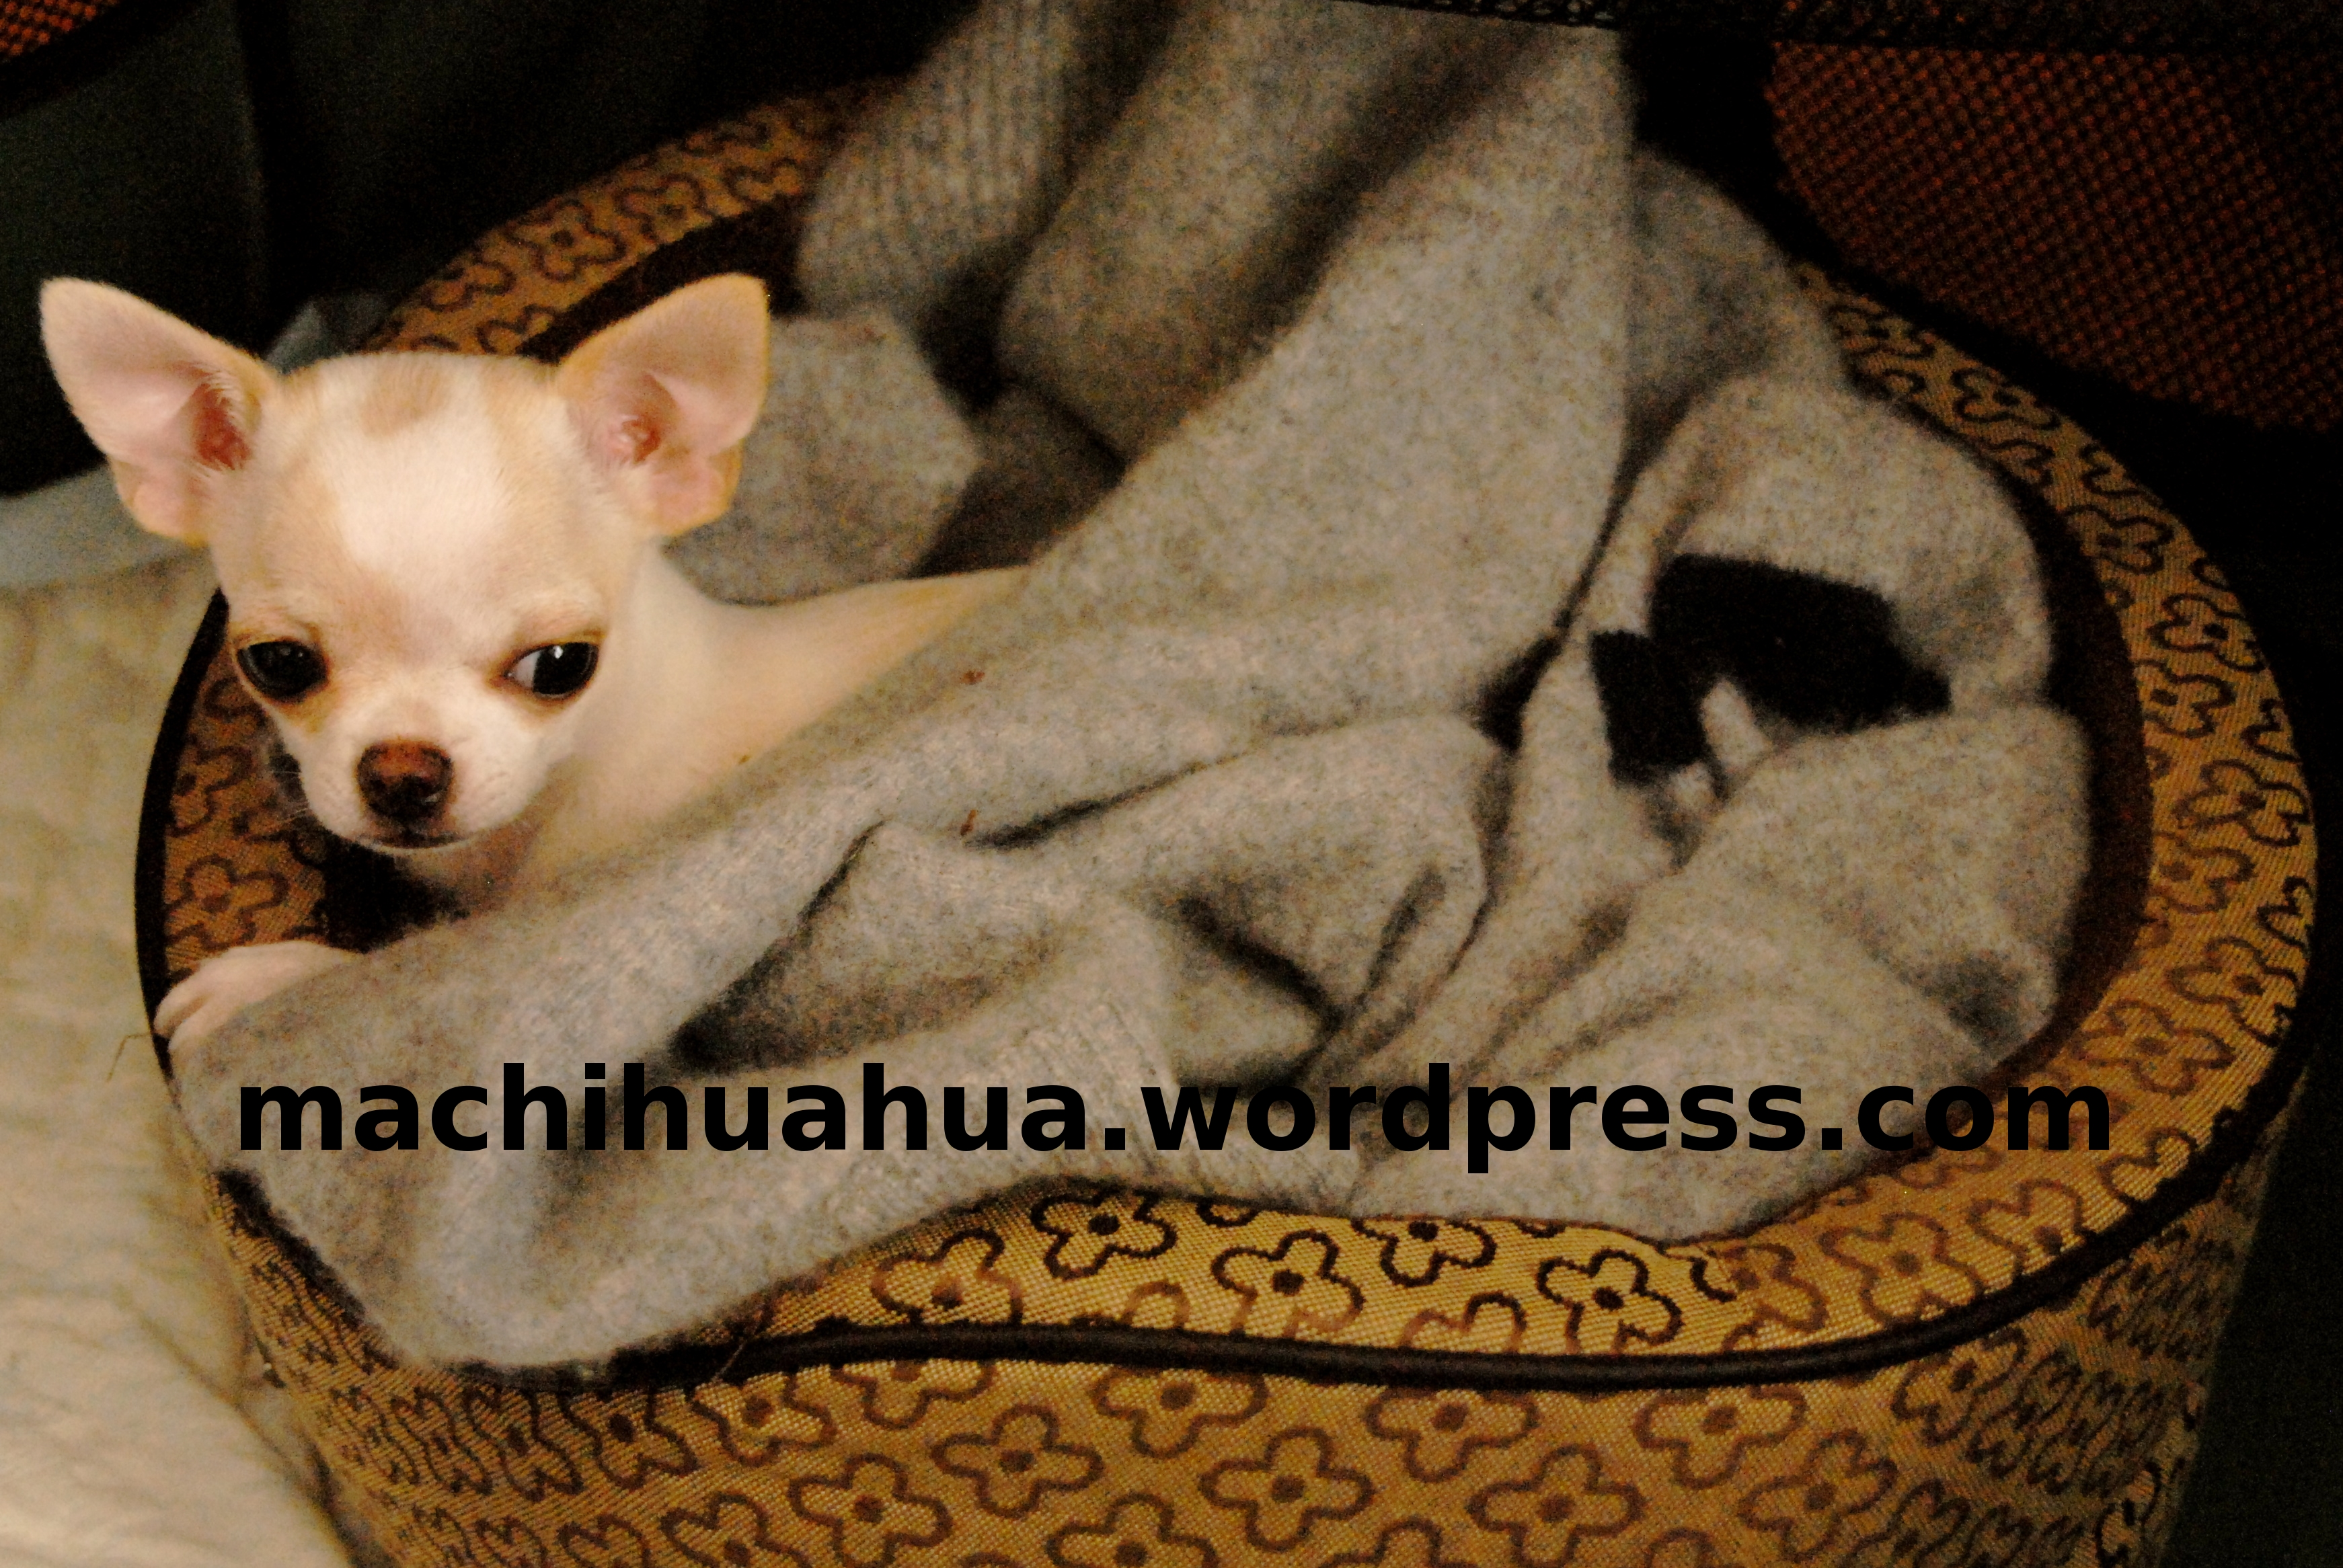 mettre un manteau son chihuahua blog chihuahua photos et video chiwawa chiot chien sur. Black Bedroom Furniture Sets. Home Design Ideas